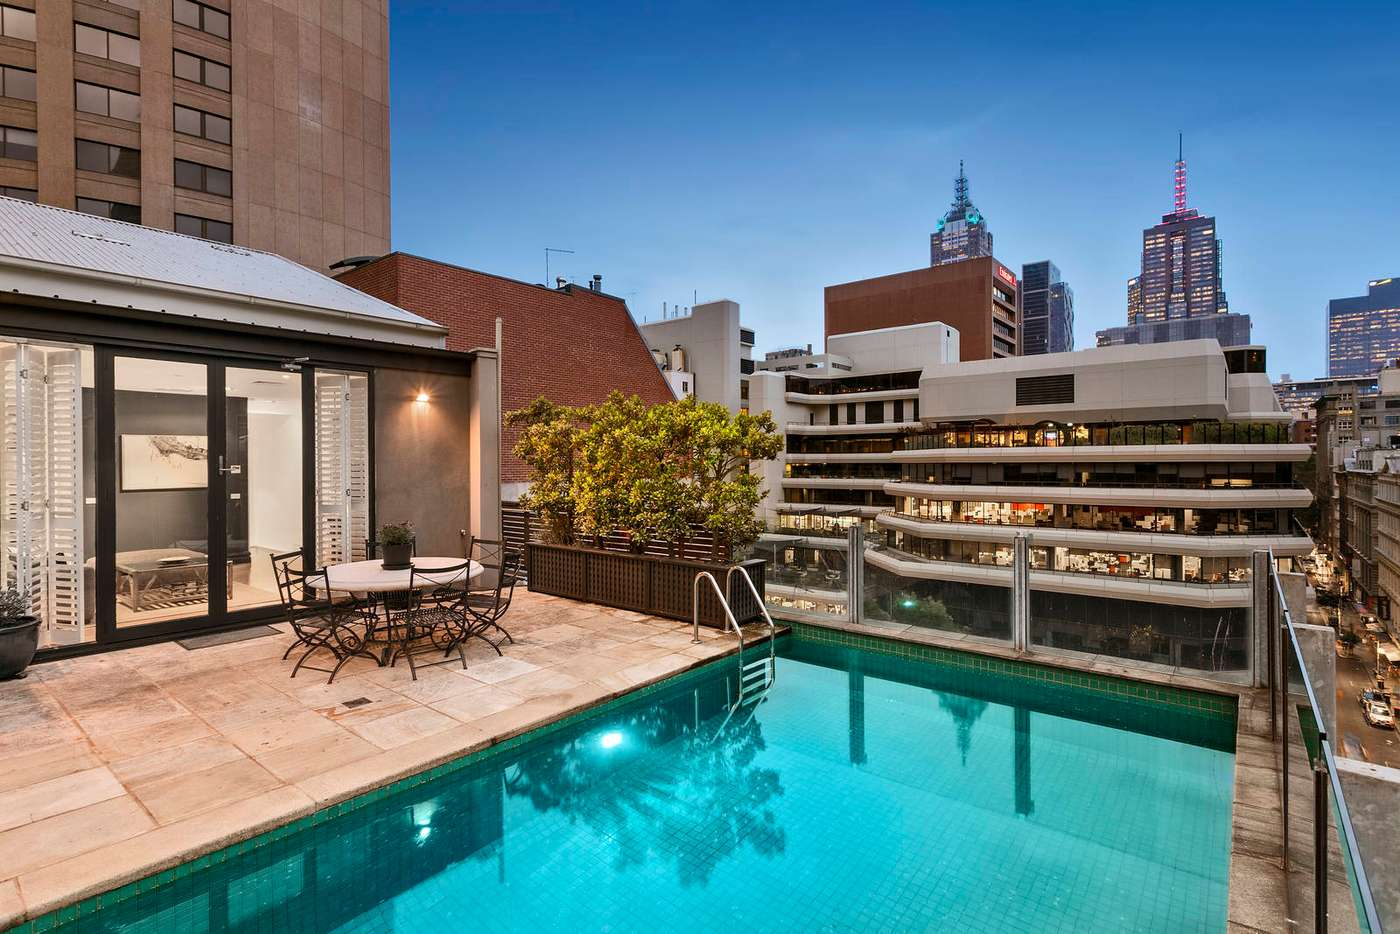 Main view of Homely apartment listing, 401/8 Bligh Place, Melbourne, VIC 3000